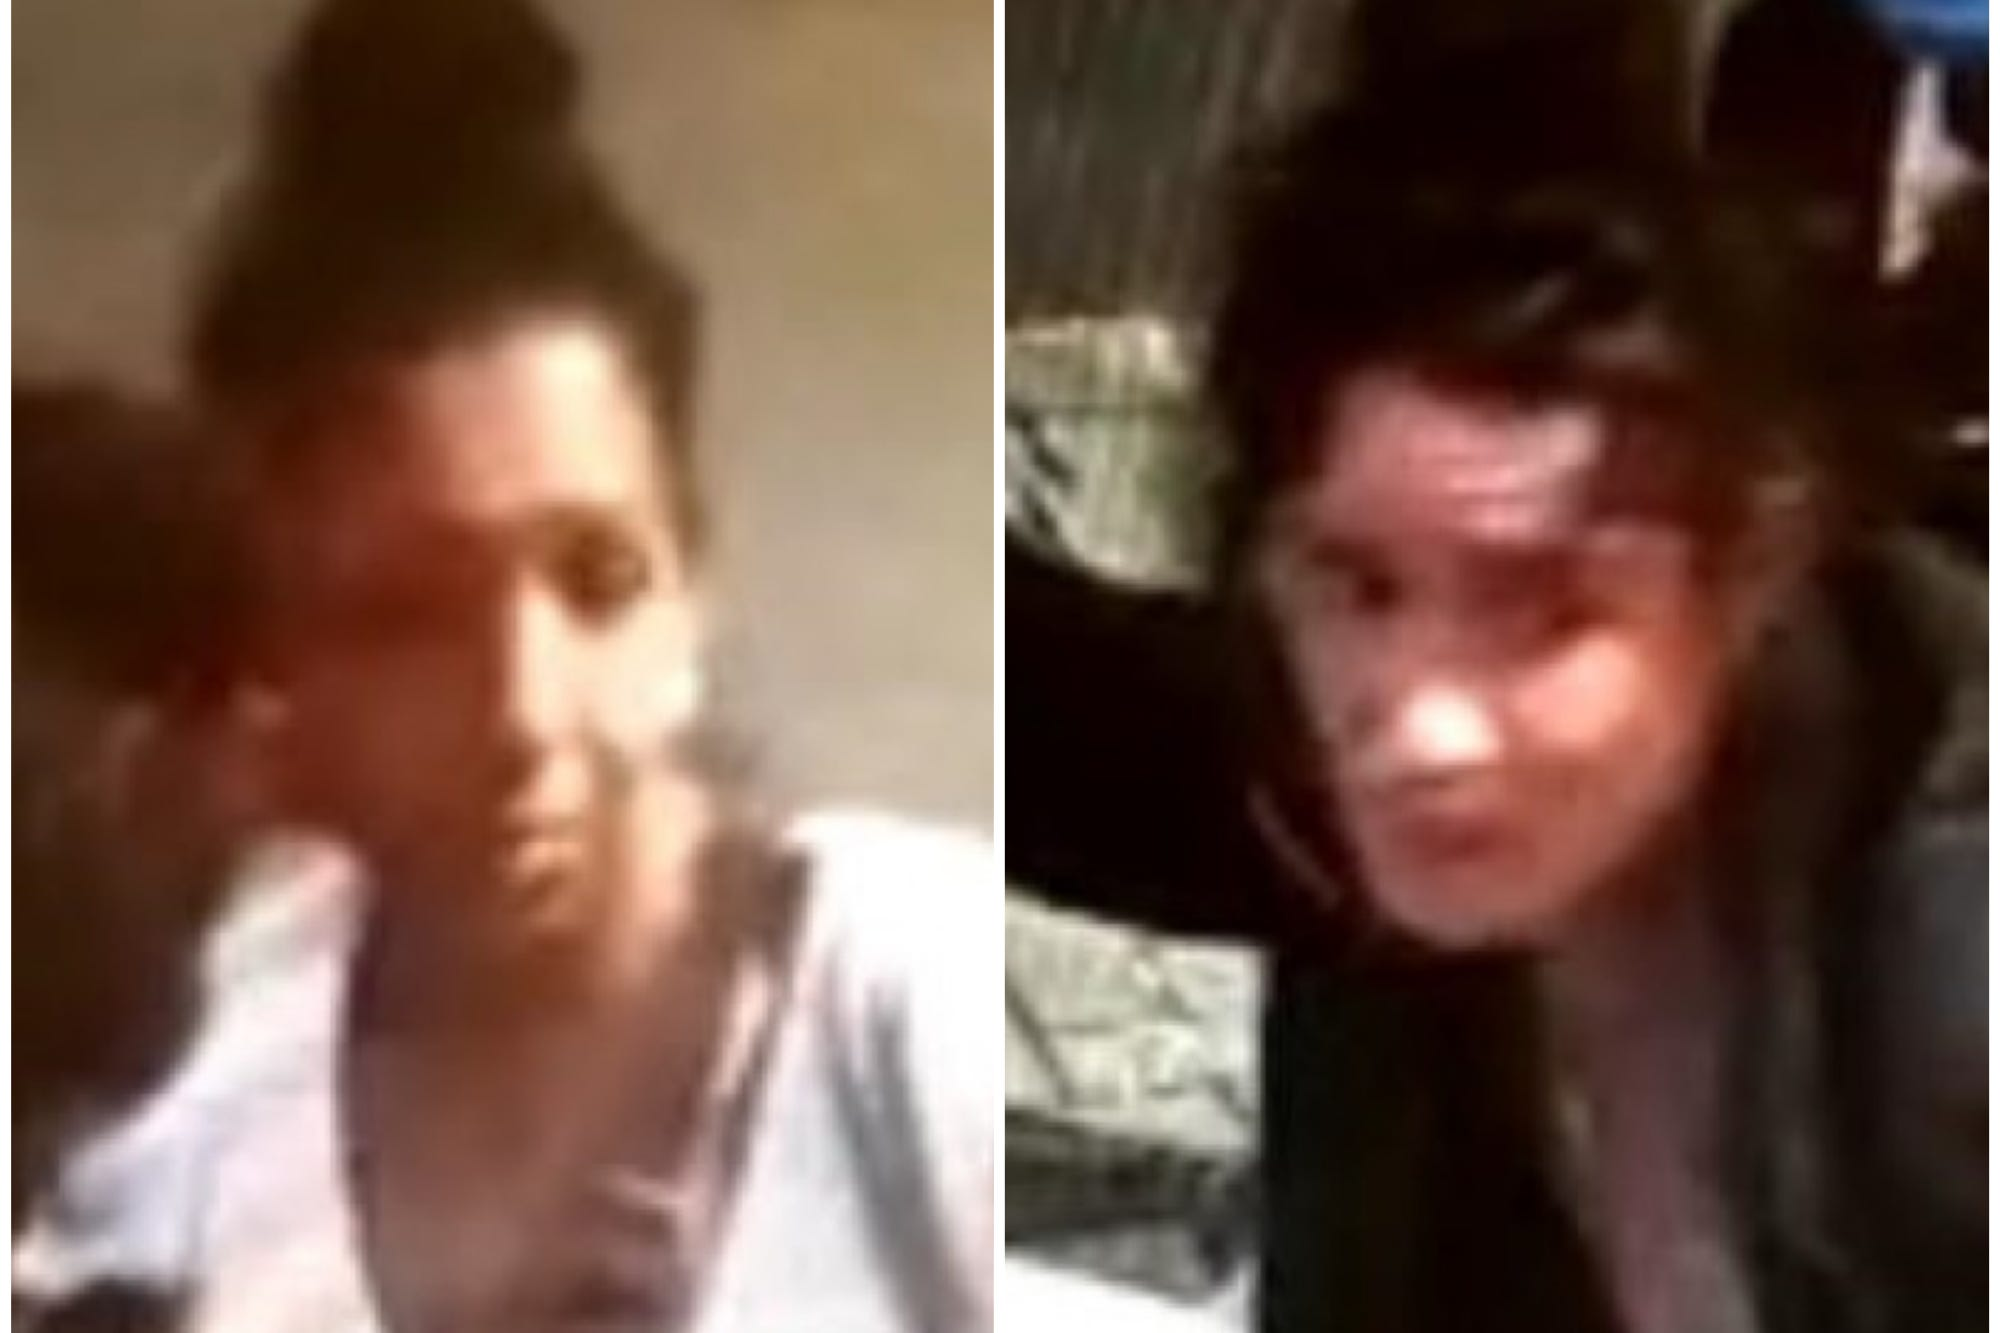 Police probing 'unexplained' death release photos of potential key witnesses